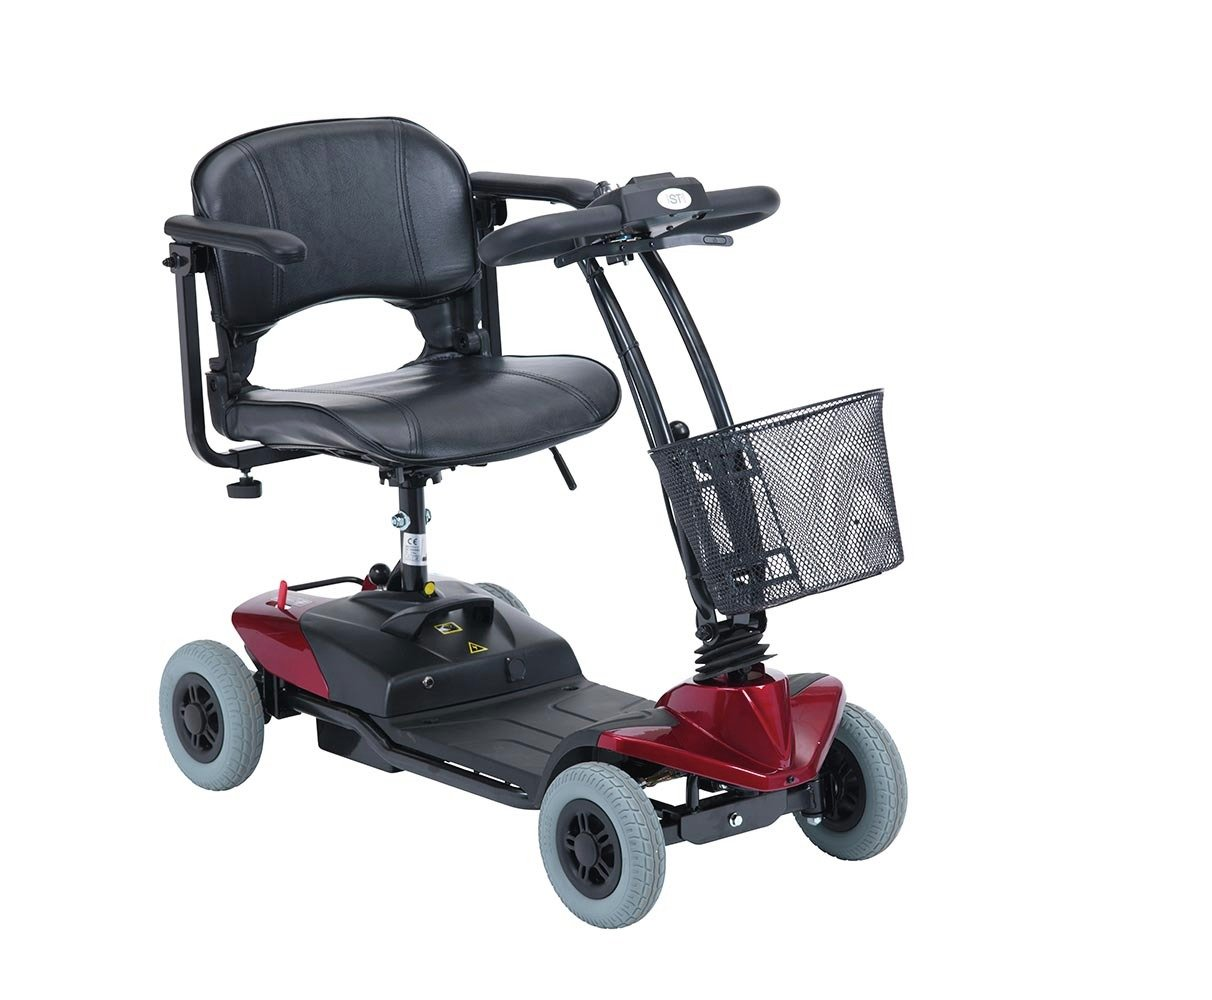 Strider 1D Lightweight Mobility Scooter - Red